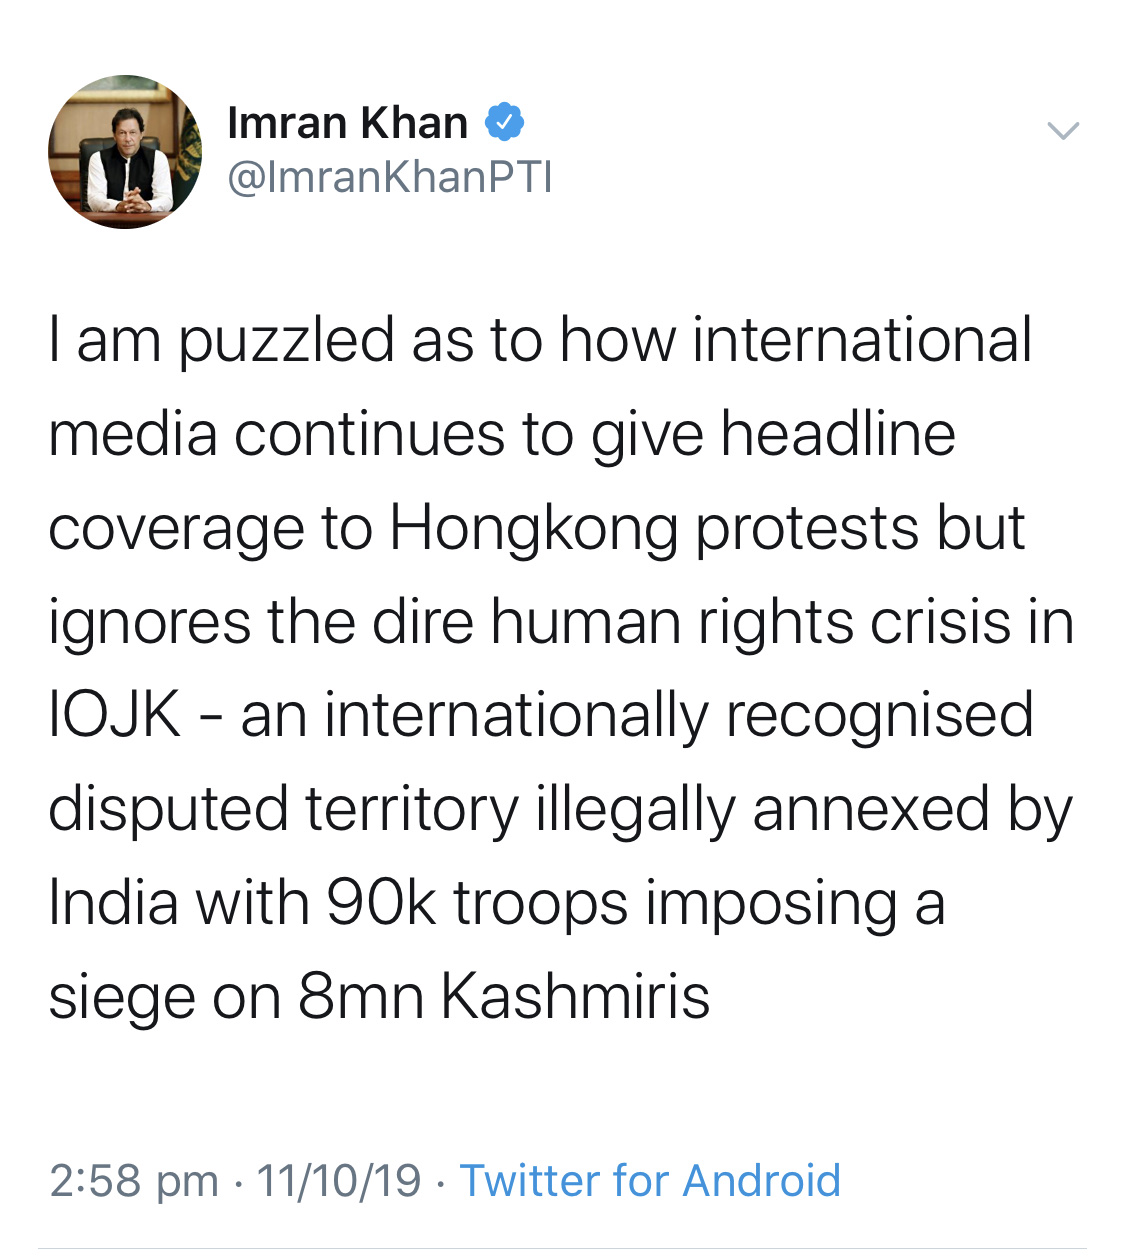 PM imran khan tweet kashmir